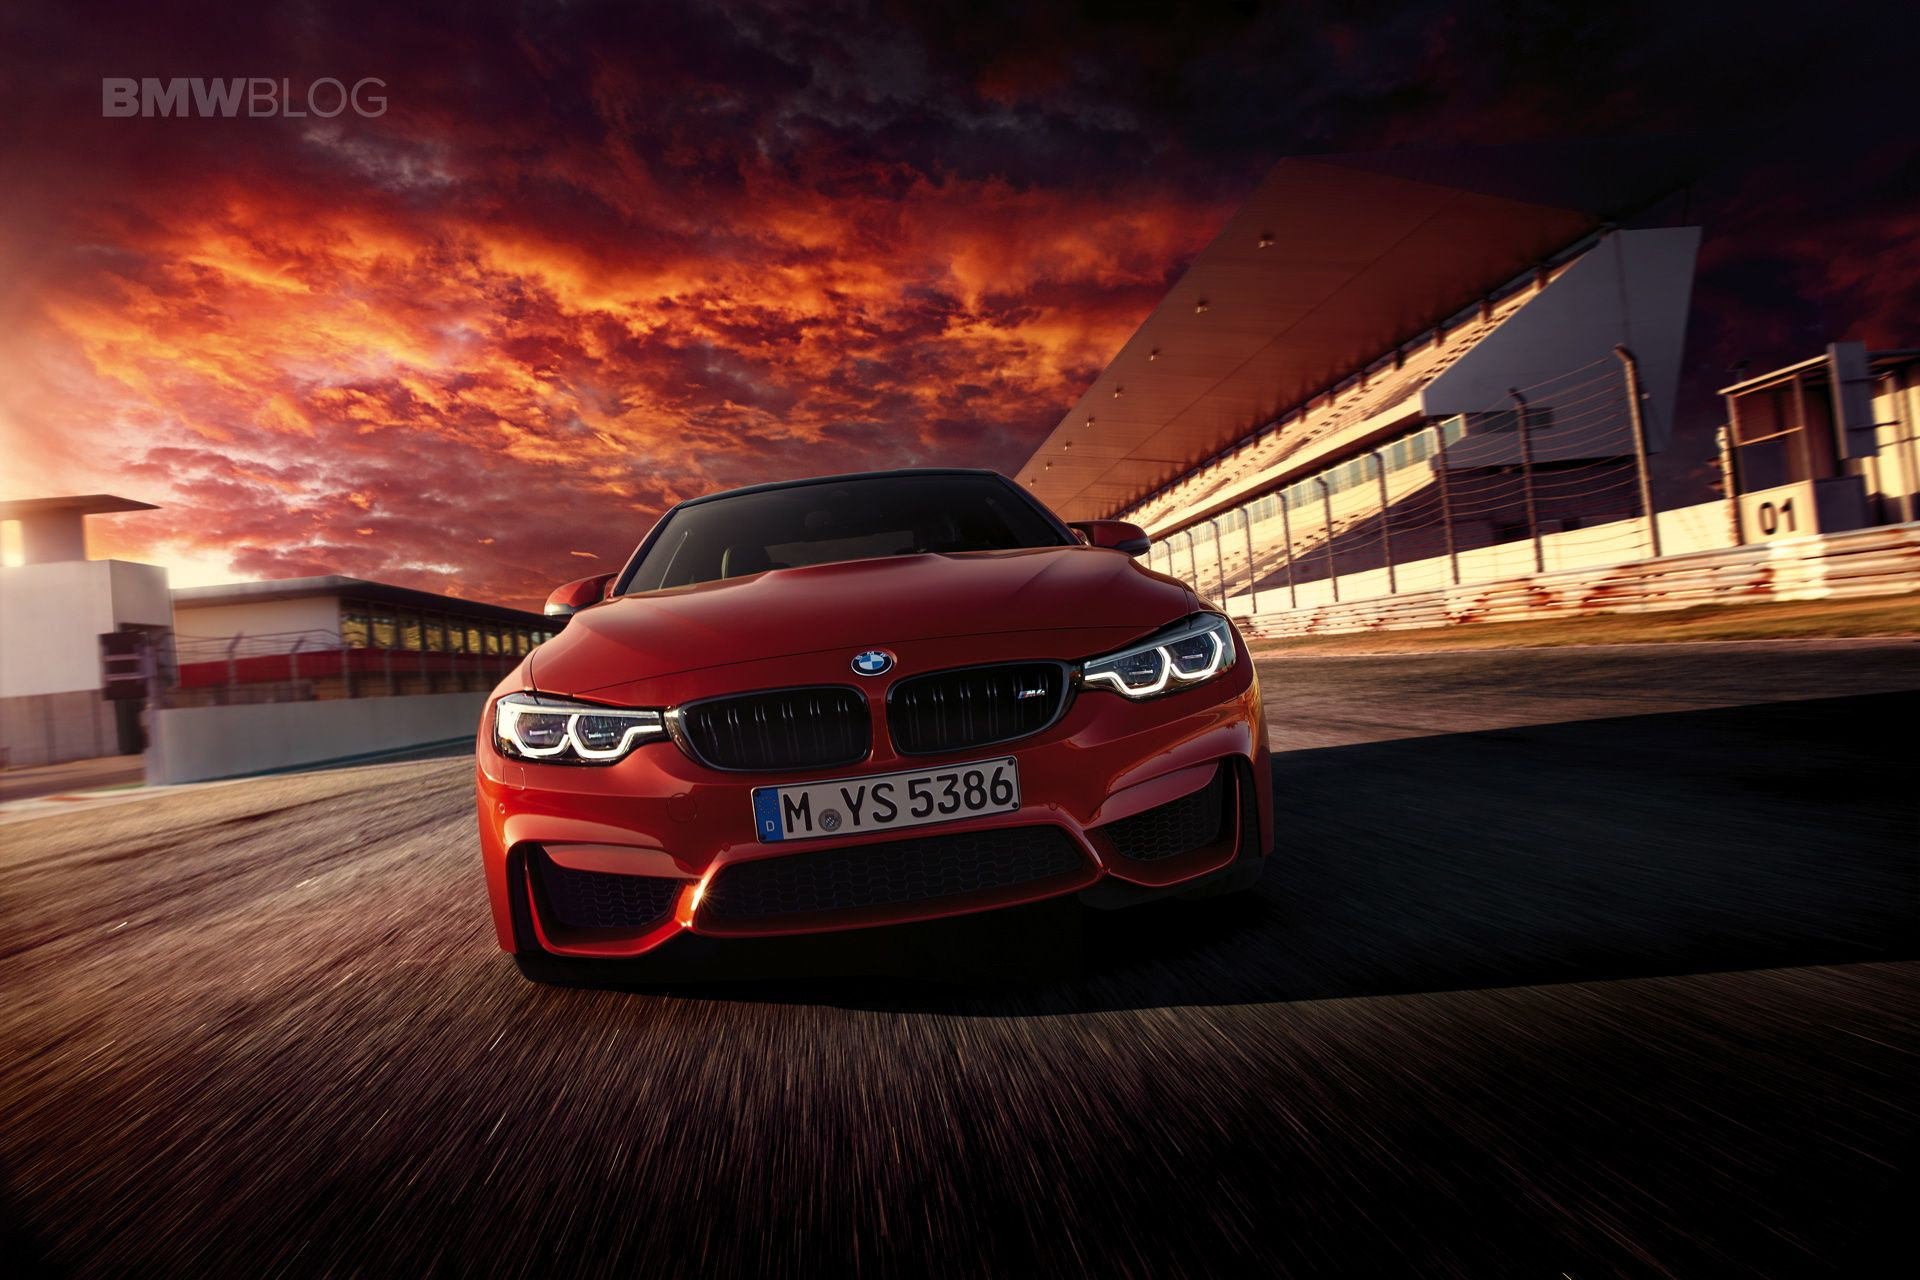 In Action The New 2017 Bmw M4 Coupe Bmw M4 Convertible And Bmw M3 Sedan Bmw M4 Bmw Wallpapers Bmw M4 Coupe 2017 bmw 4 series 420i coupe sport